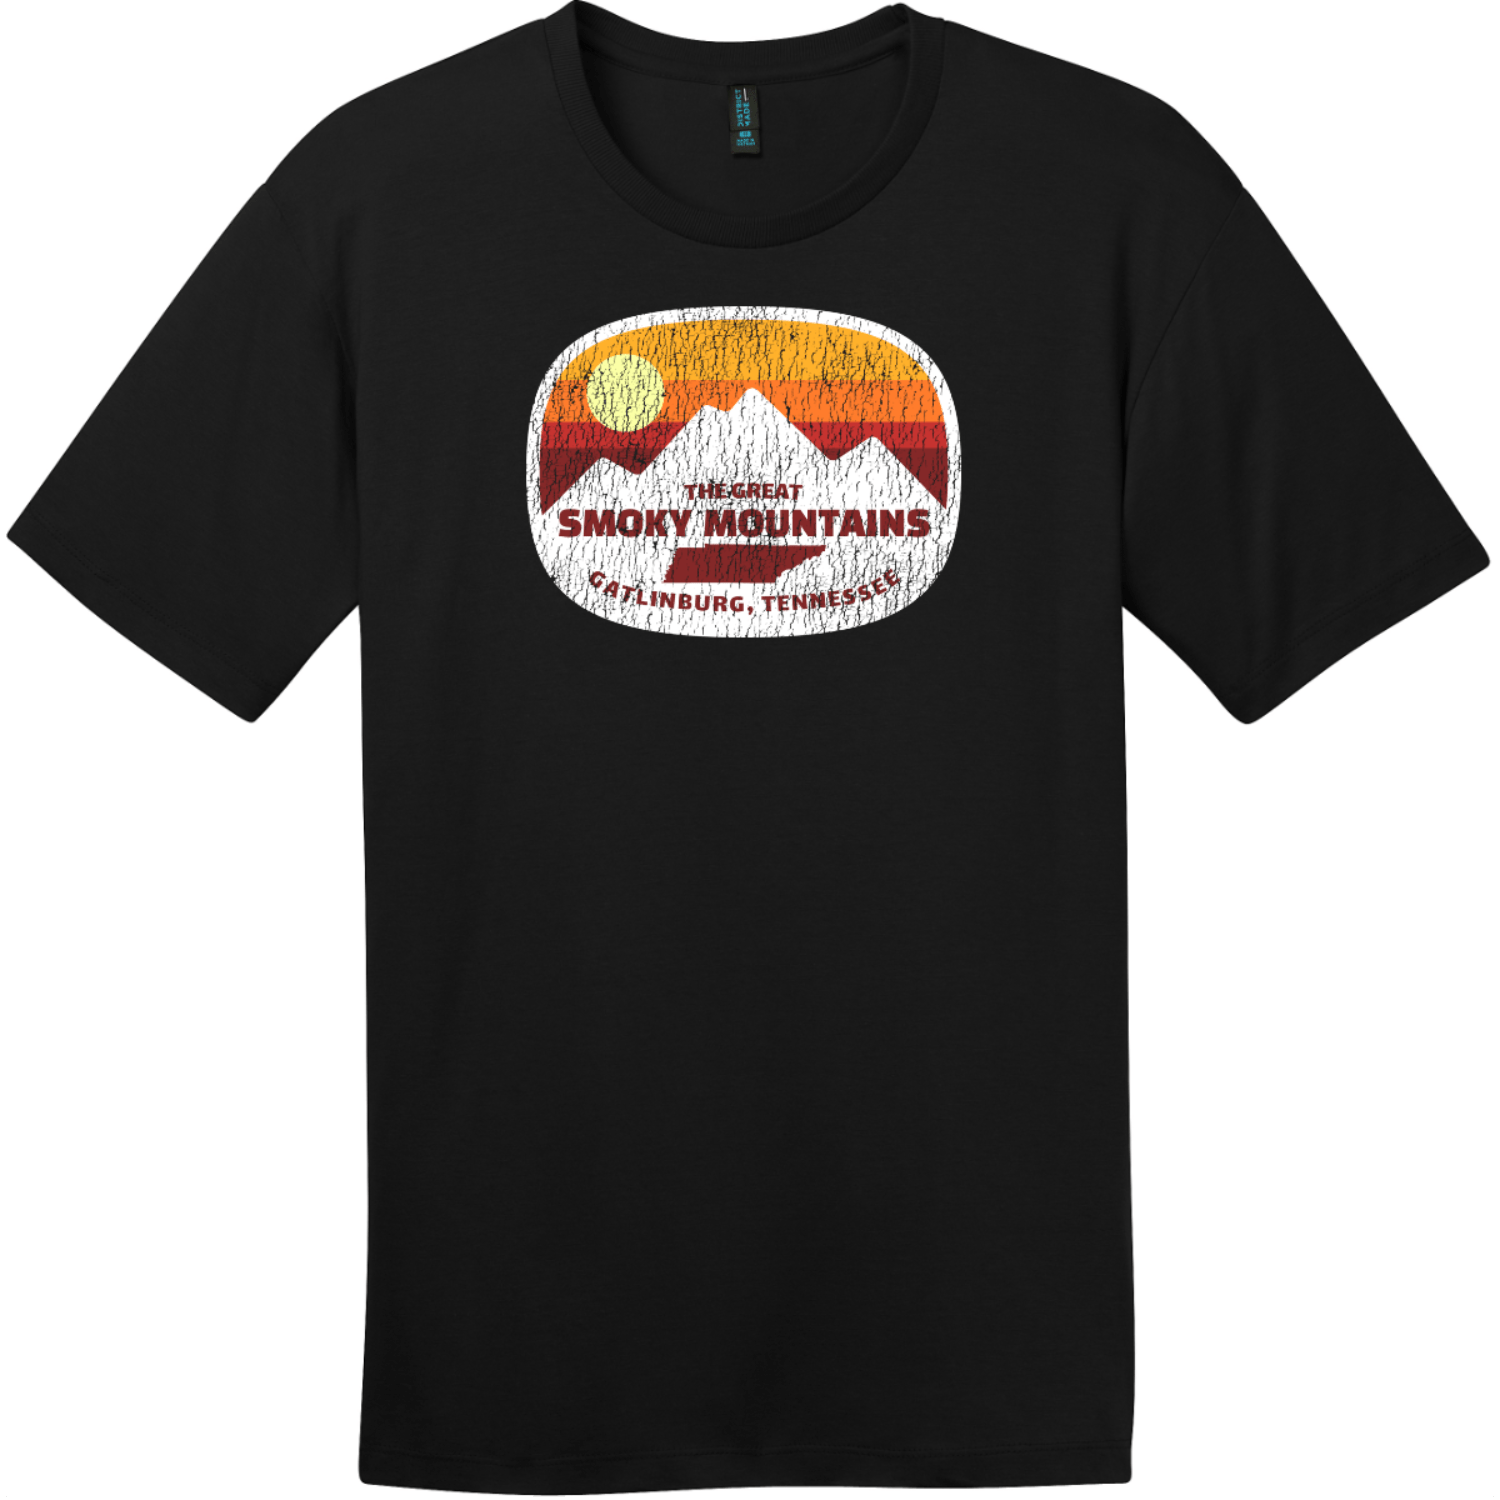 Gatlinburg Smoky Mountains Tennessee T-Shirt Jet Black District Perfect Weight Tee DT104